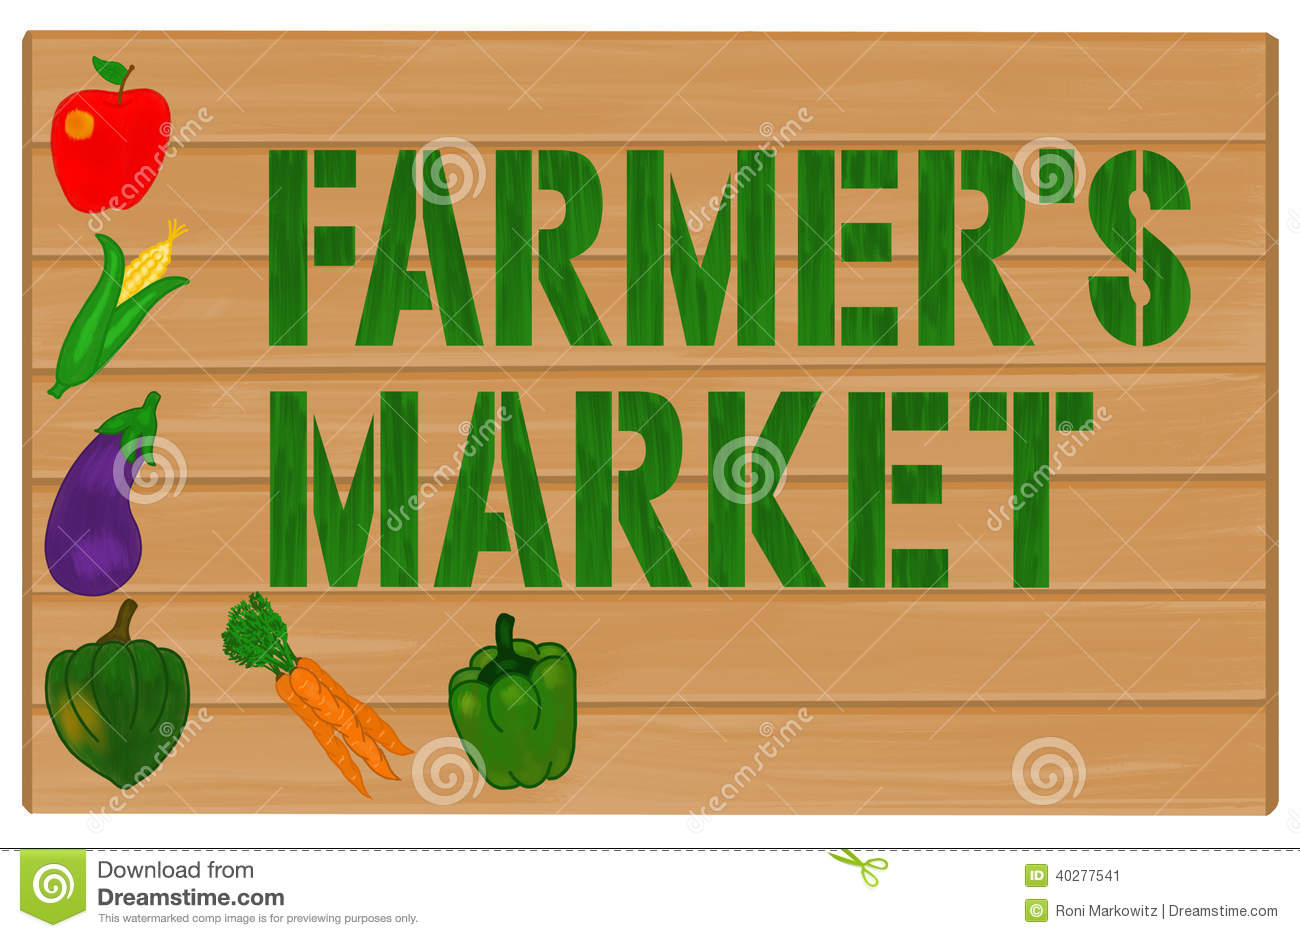 Farmers Market Stock Illustrations.